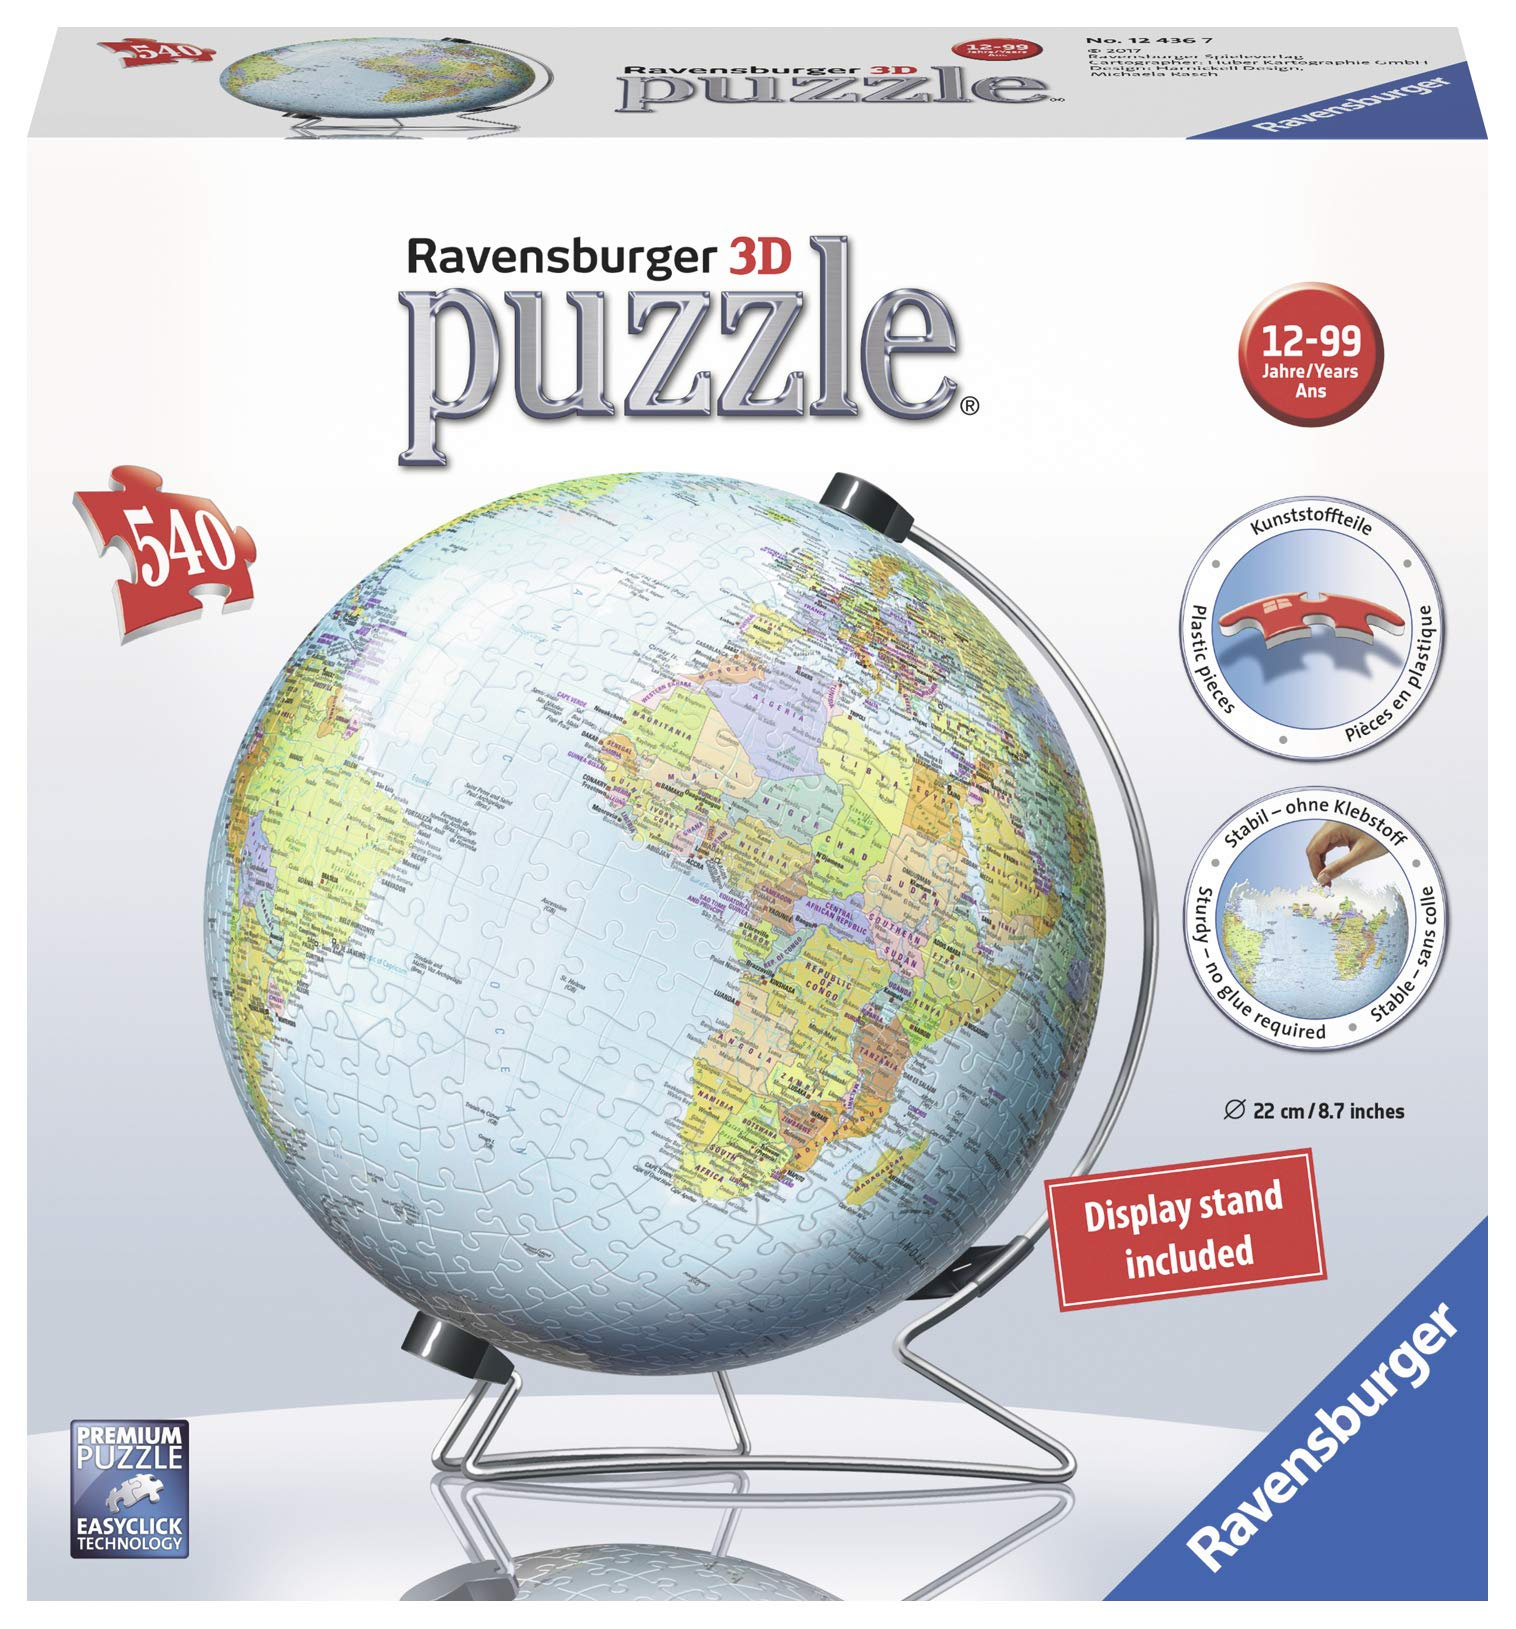 Ravensburger The Earth 540 Piece 3D Jigsaw Puzzle for Kids and Adults - Easy Click Technology Means Pieces Fit Together Perfectly by Ravensburger